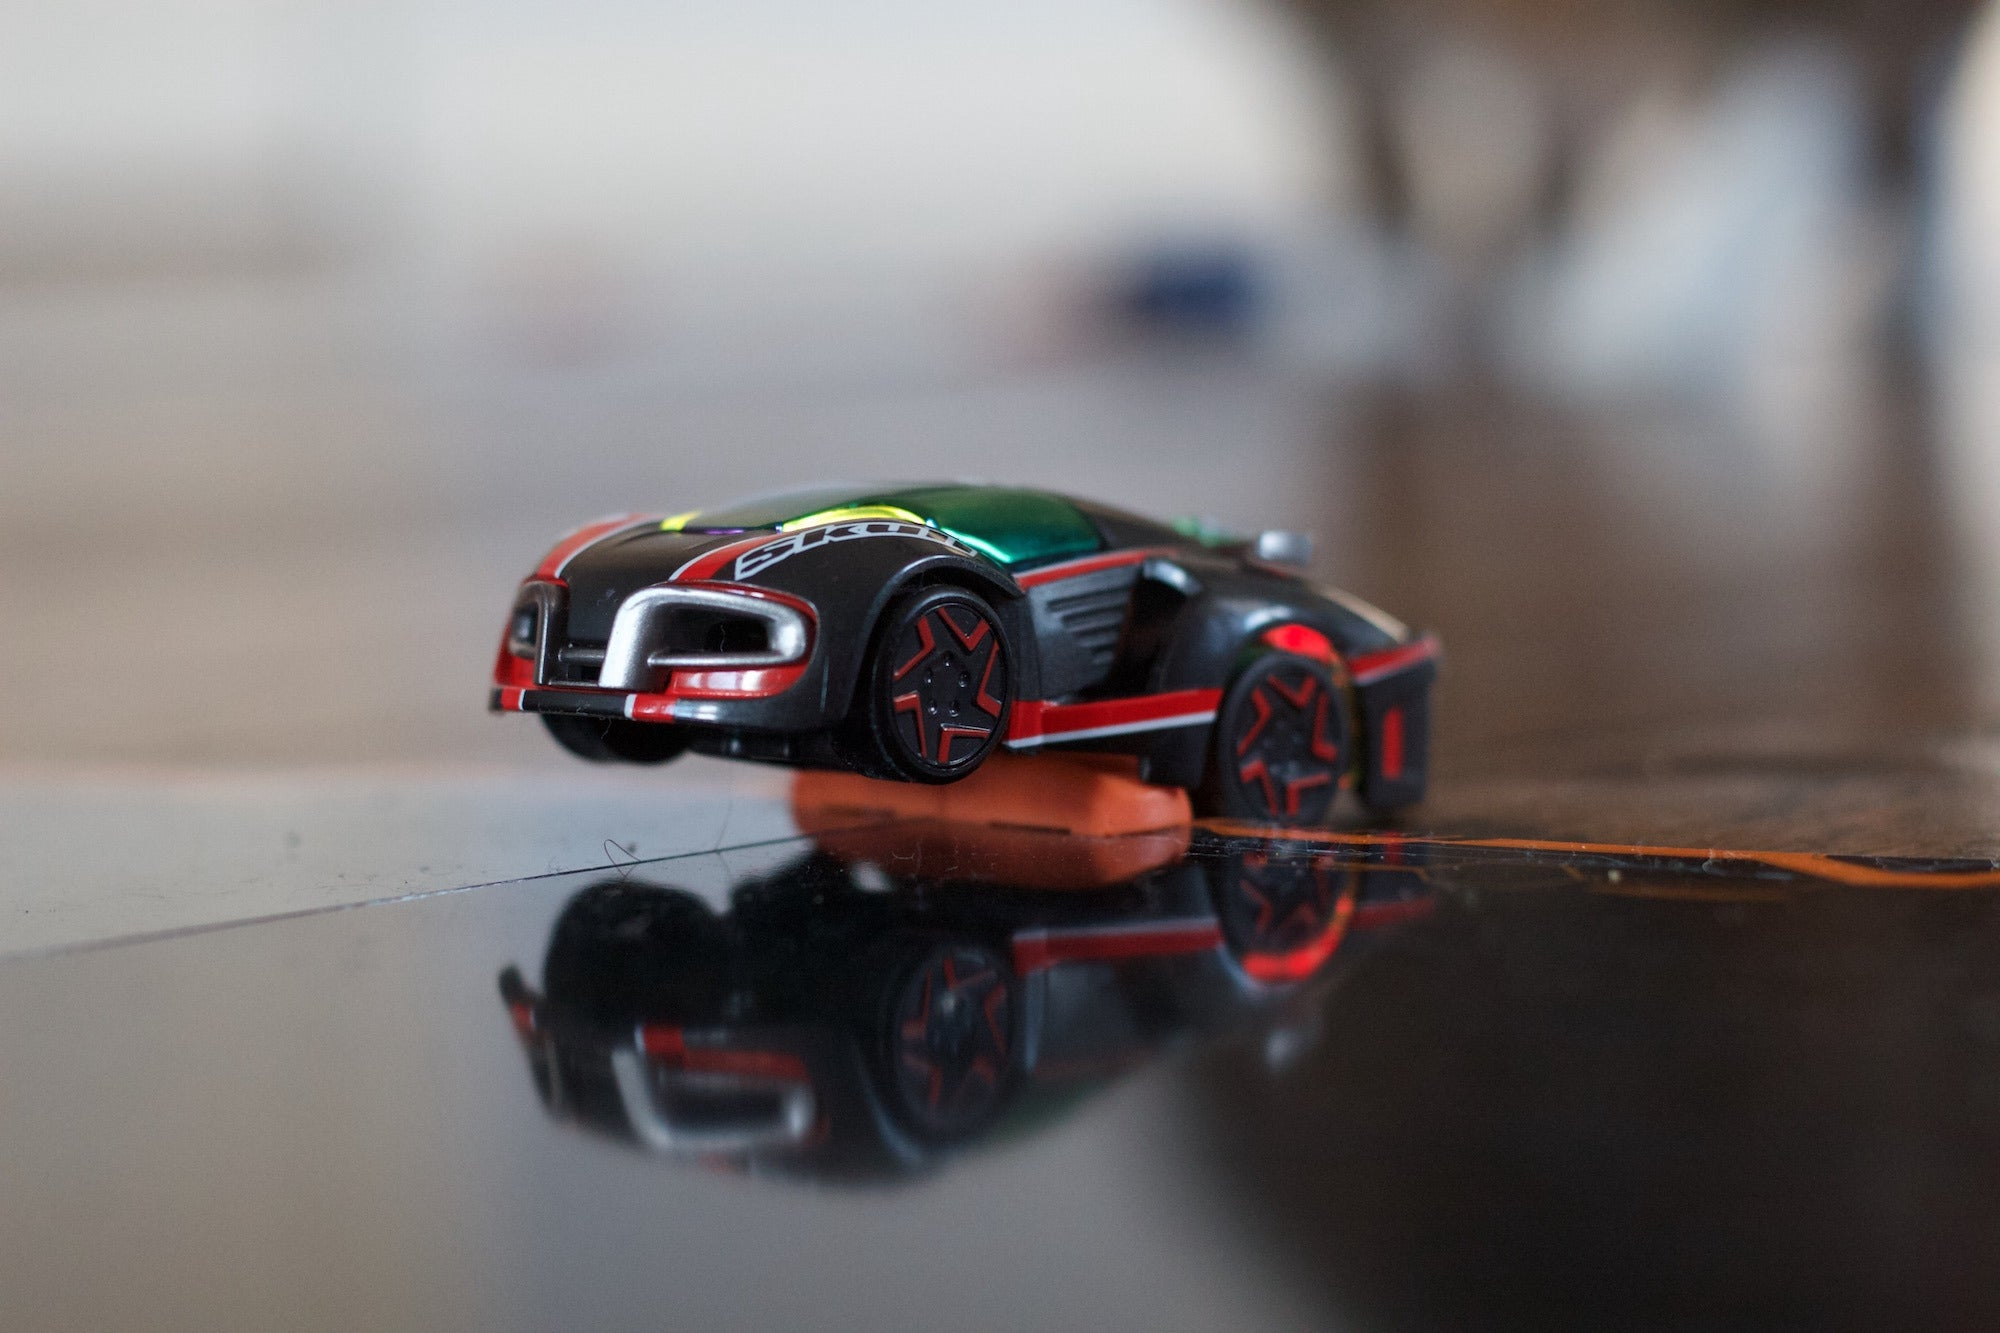 anki overdrive review robot race cars are as cool as they sound macworld. Black Bedroom Furniture Sets. Home Design Ideas